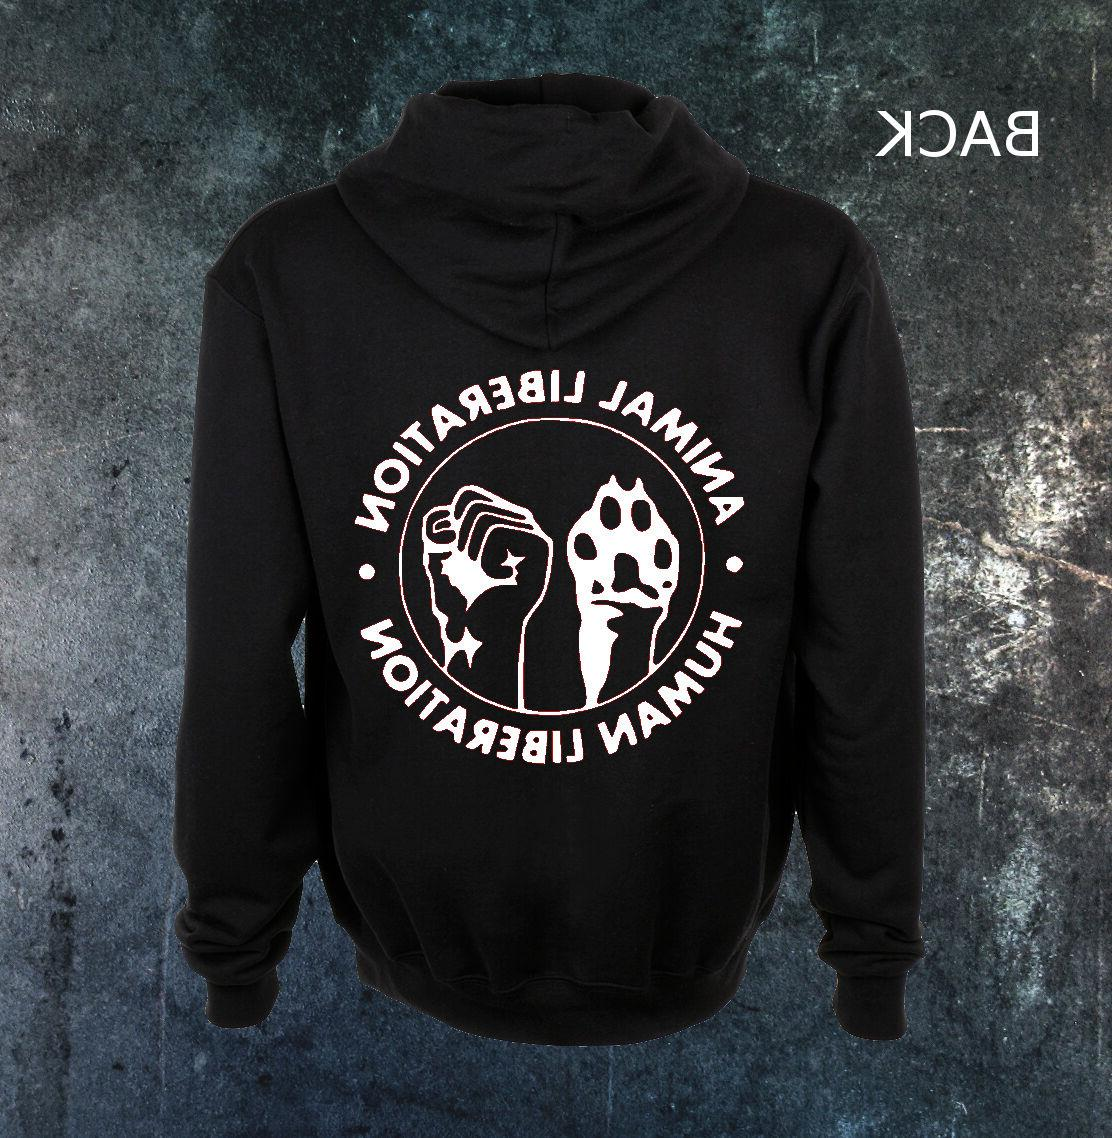 Human Animal Liberation Rights ALF Vegan Anarchy Zip Up Zipp